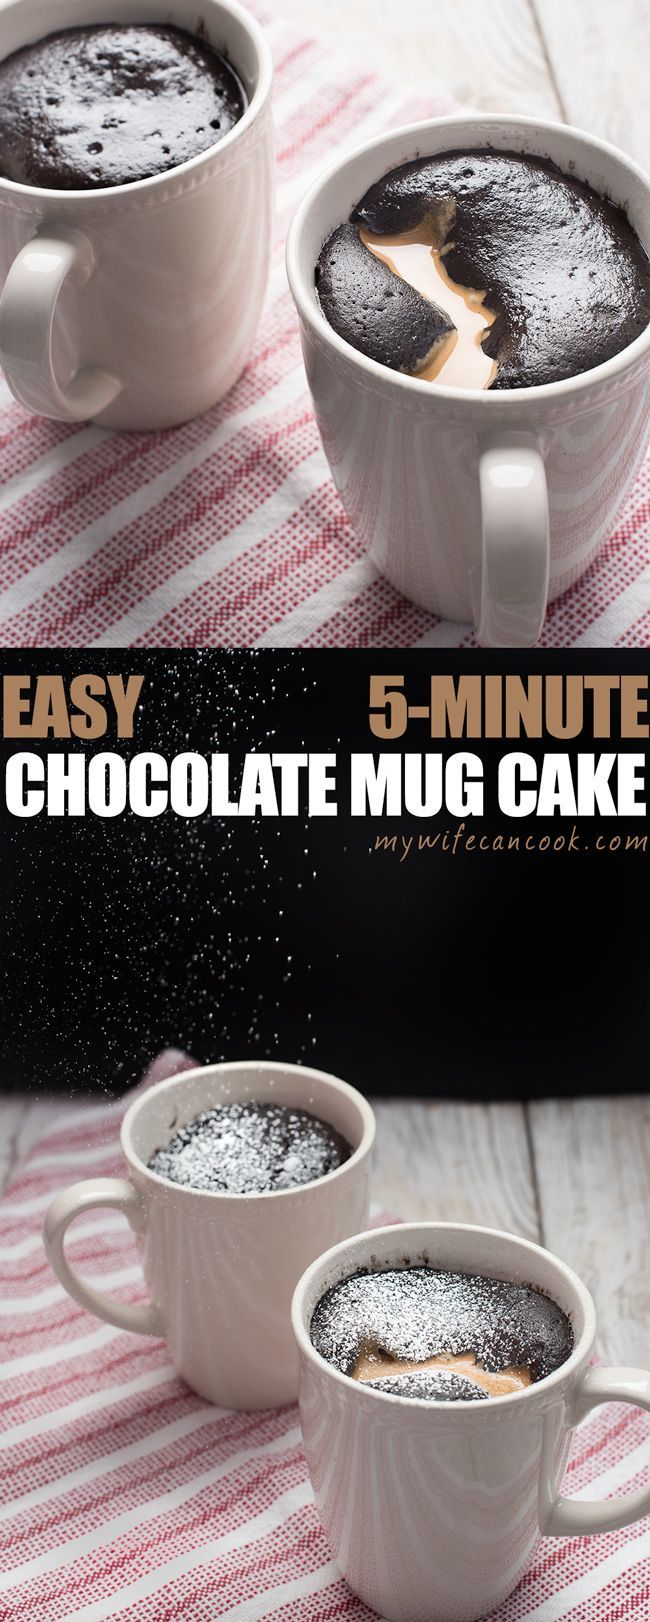 Chocolate Mug Cake - Vegan and Gluten-free! This easy gluten-free and vegan peanut butter chocolate mug cake recipe is one of our go to 5-minute desserts when we want dessert fast without the fuss. This mug cake recipe uses quinoa flour, cocoa, almond mil